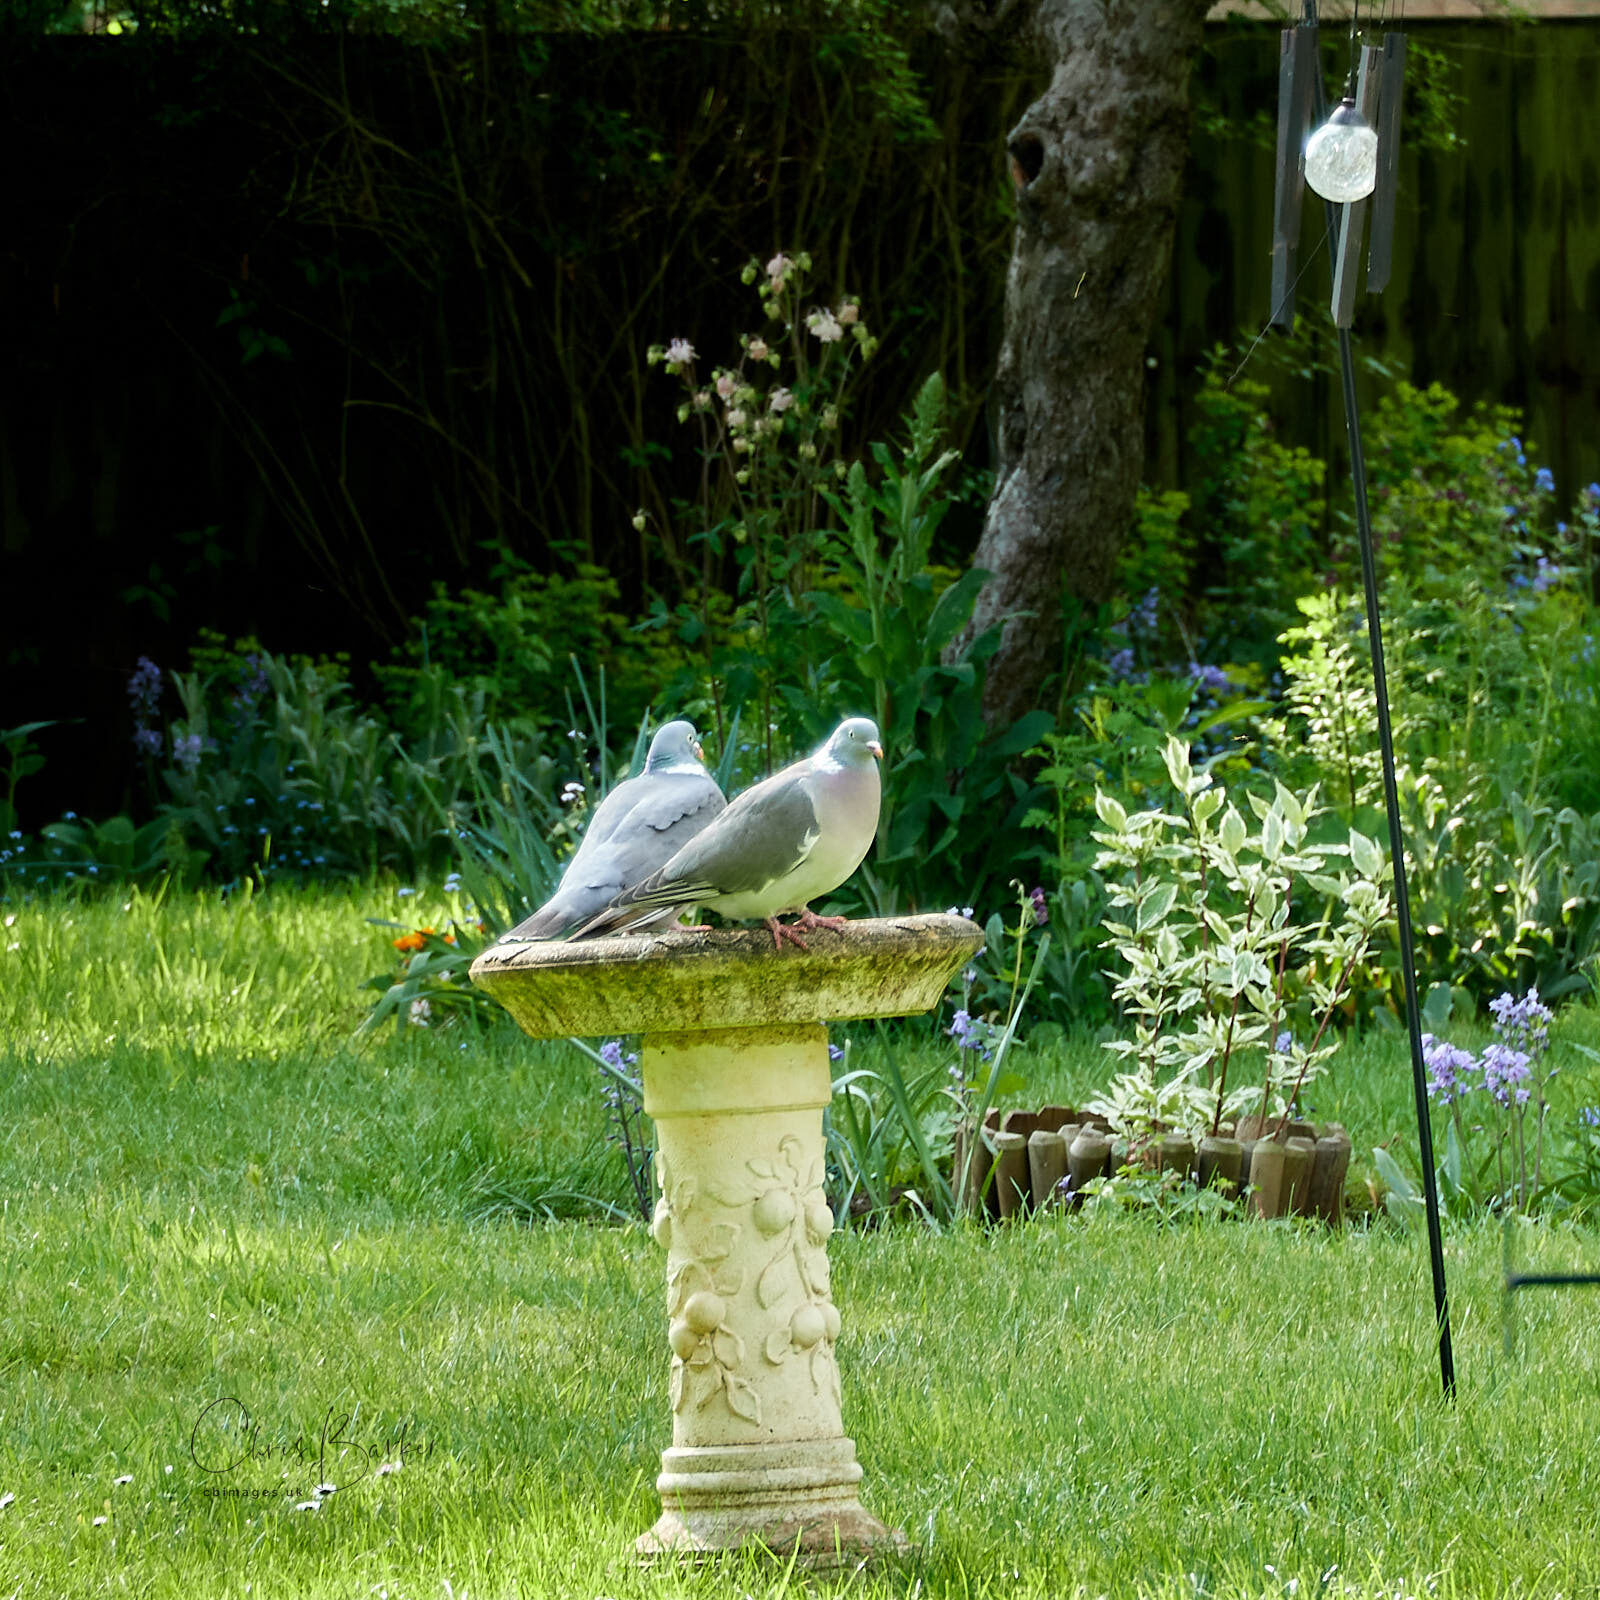 Two pigeons sitting on a bird bath in a garden